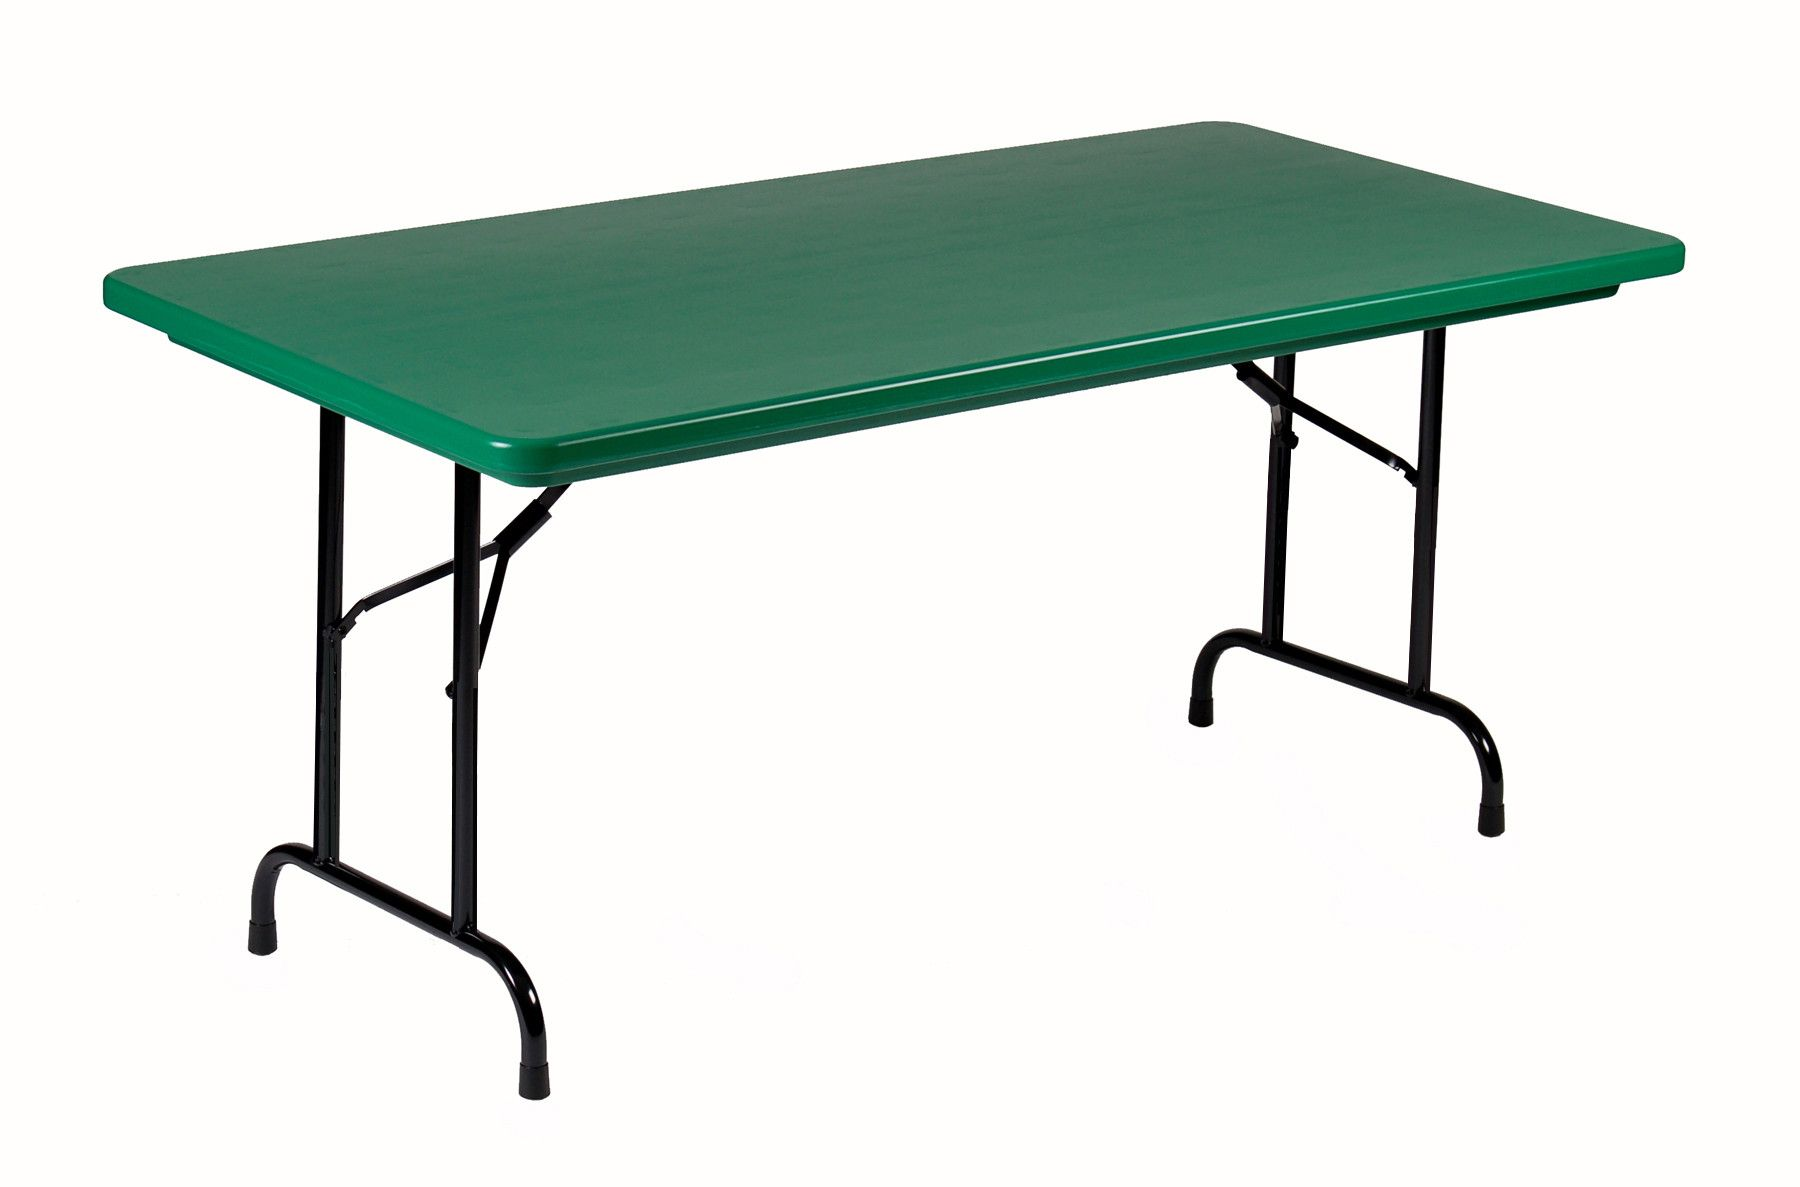 Indoor Use Yes Base Material Metal Shape Rectangular Tabletop Plastic Resin Dimensions Size 24 X 48 Overall Hei